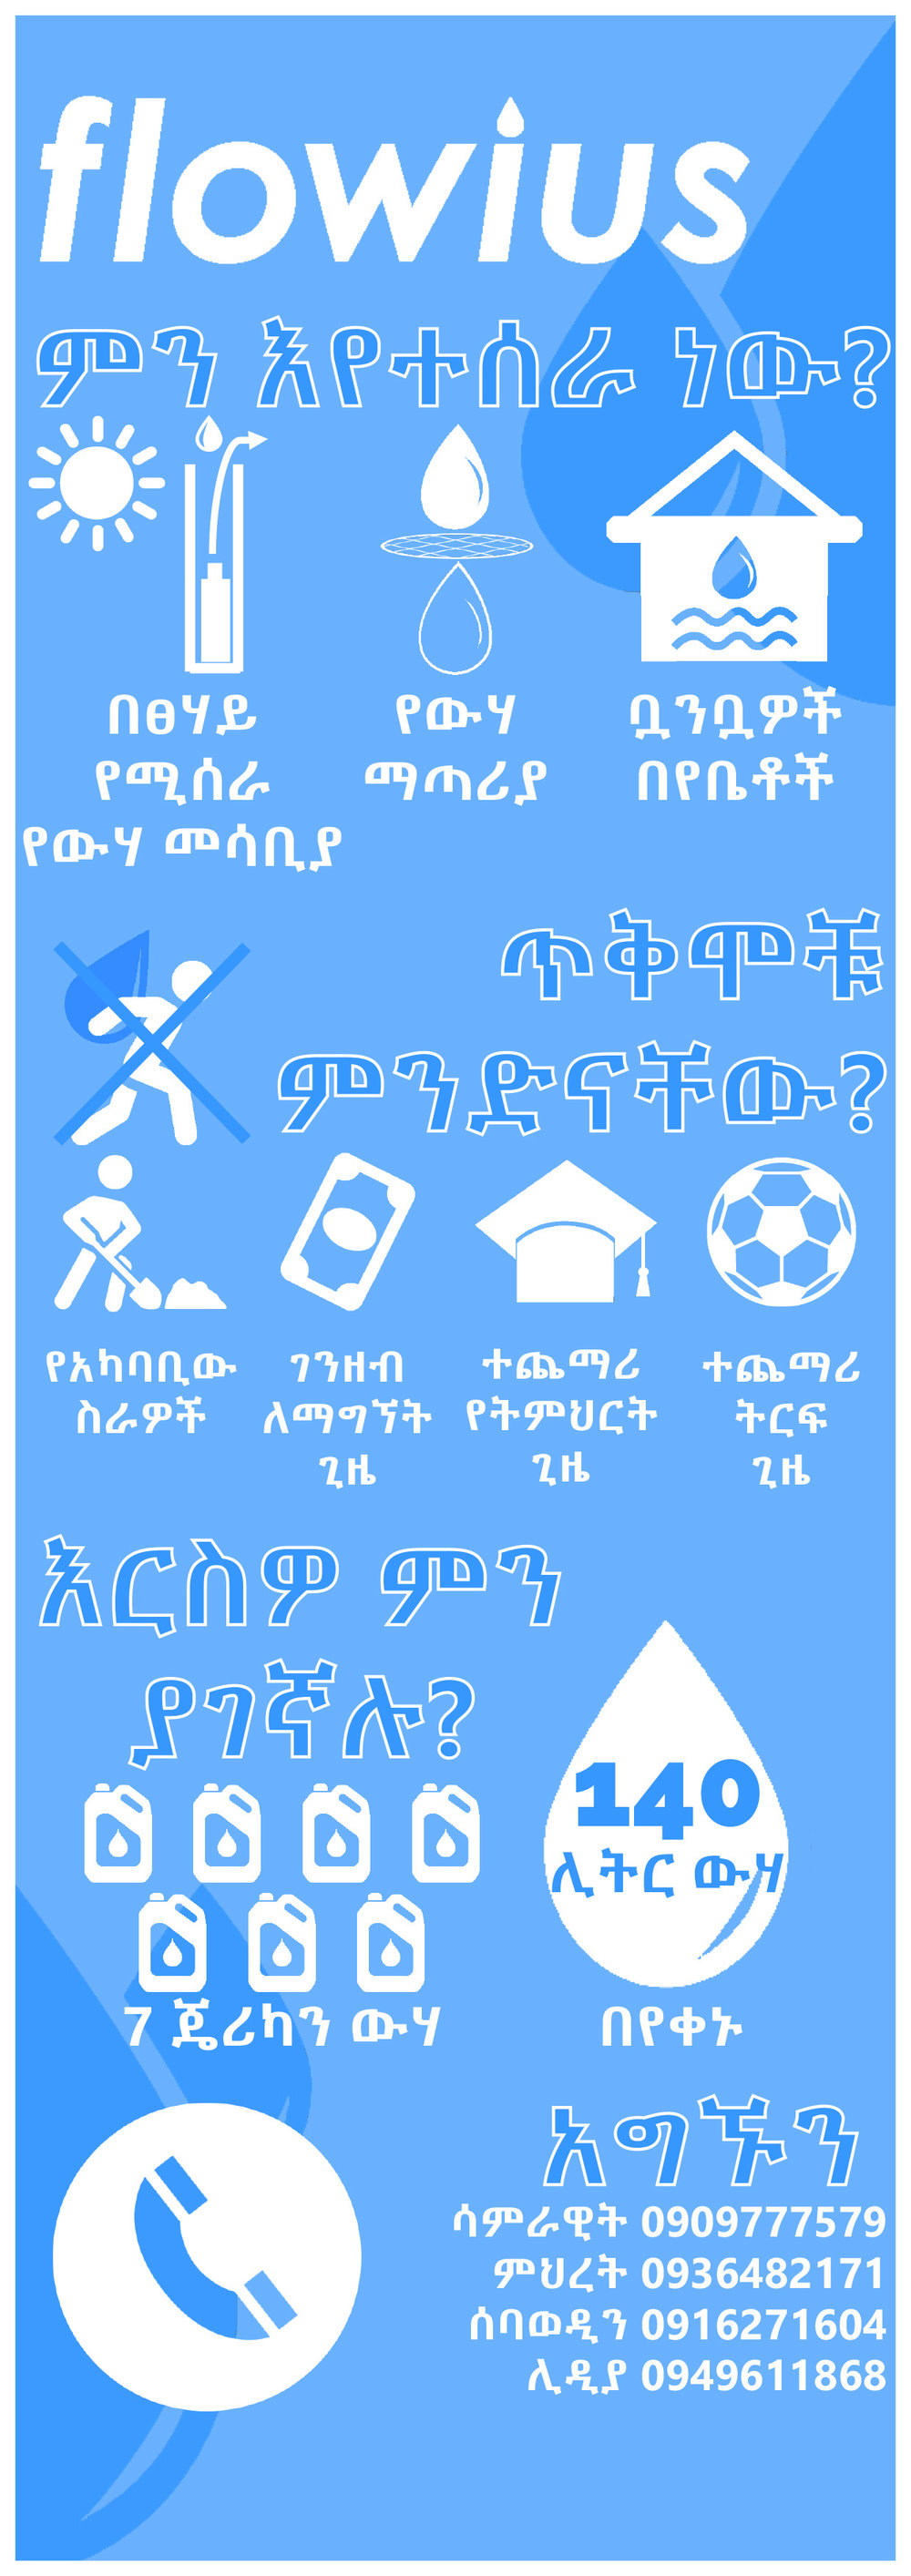 community-facts-amharic single.jpg